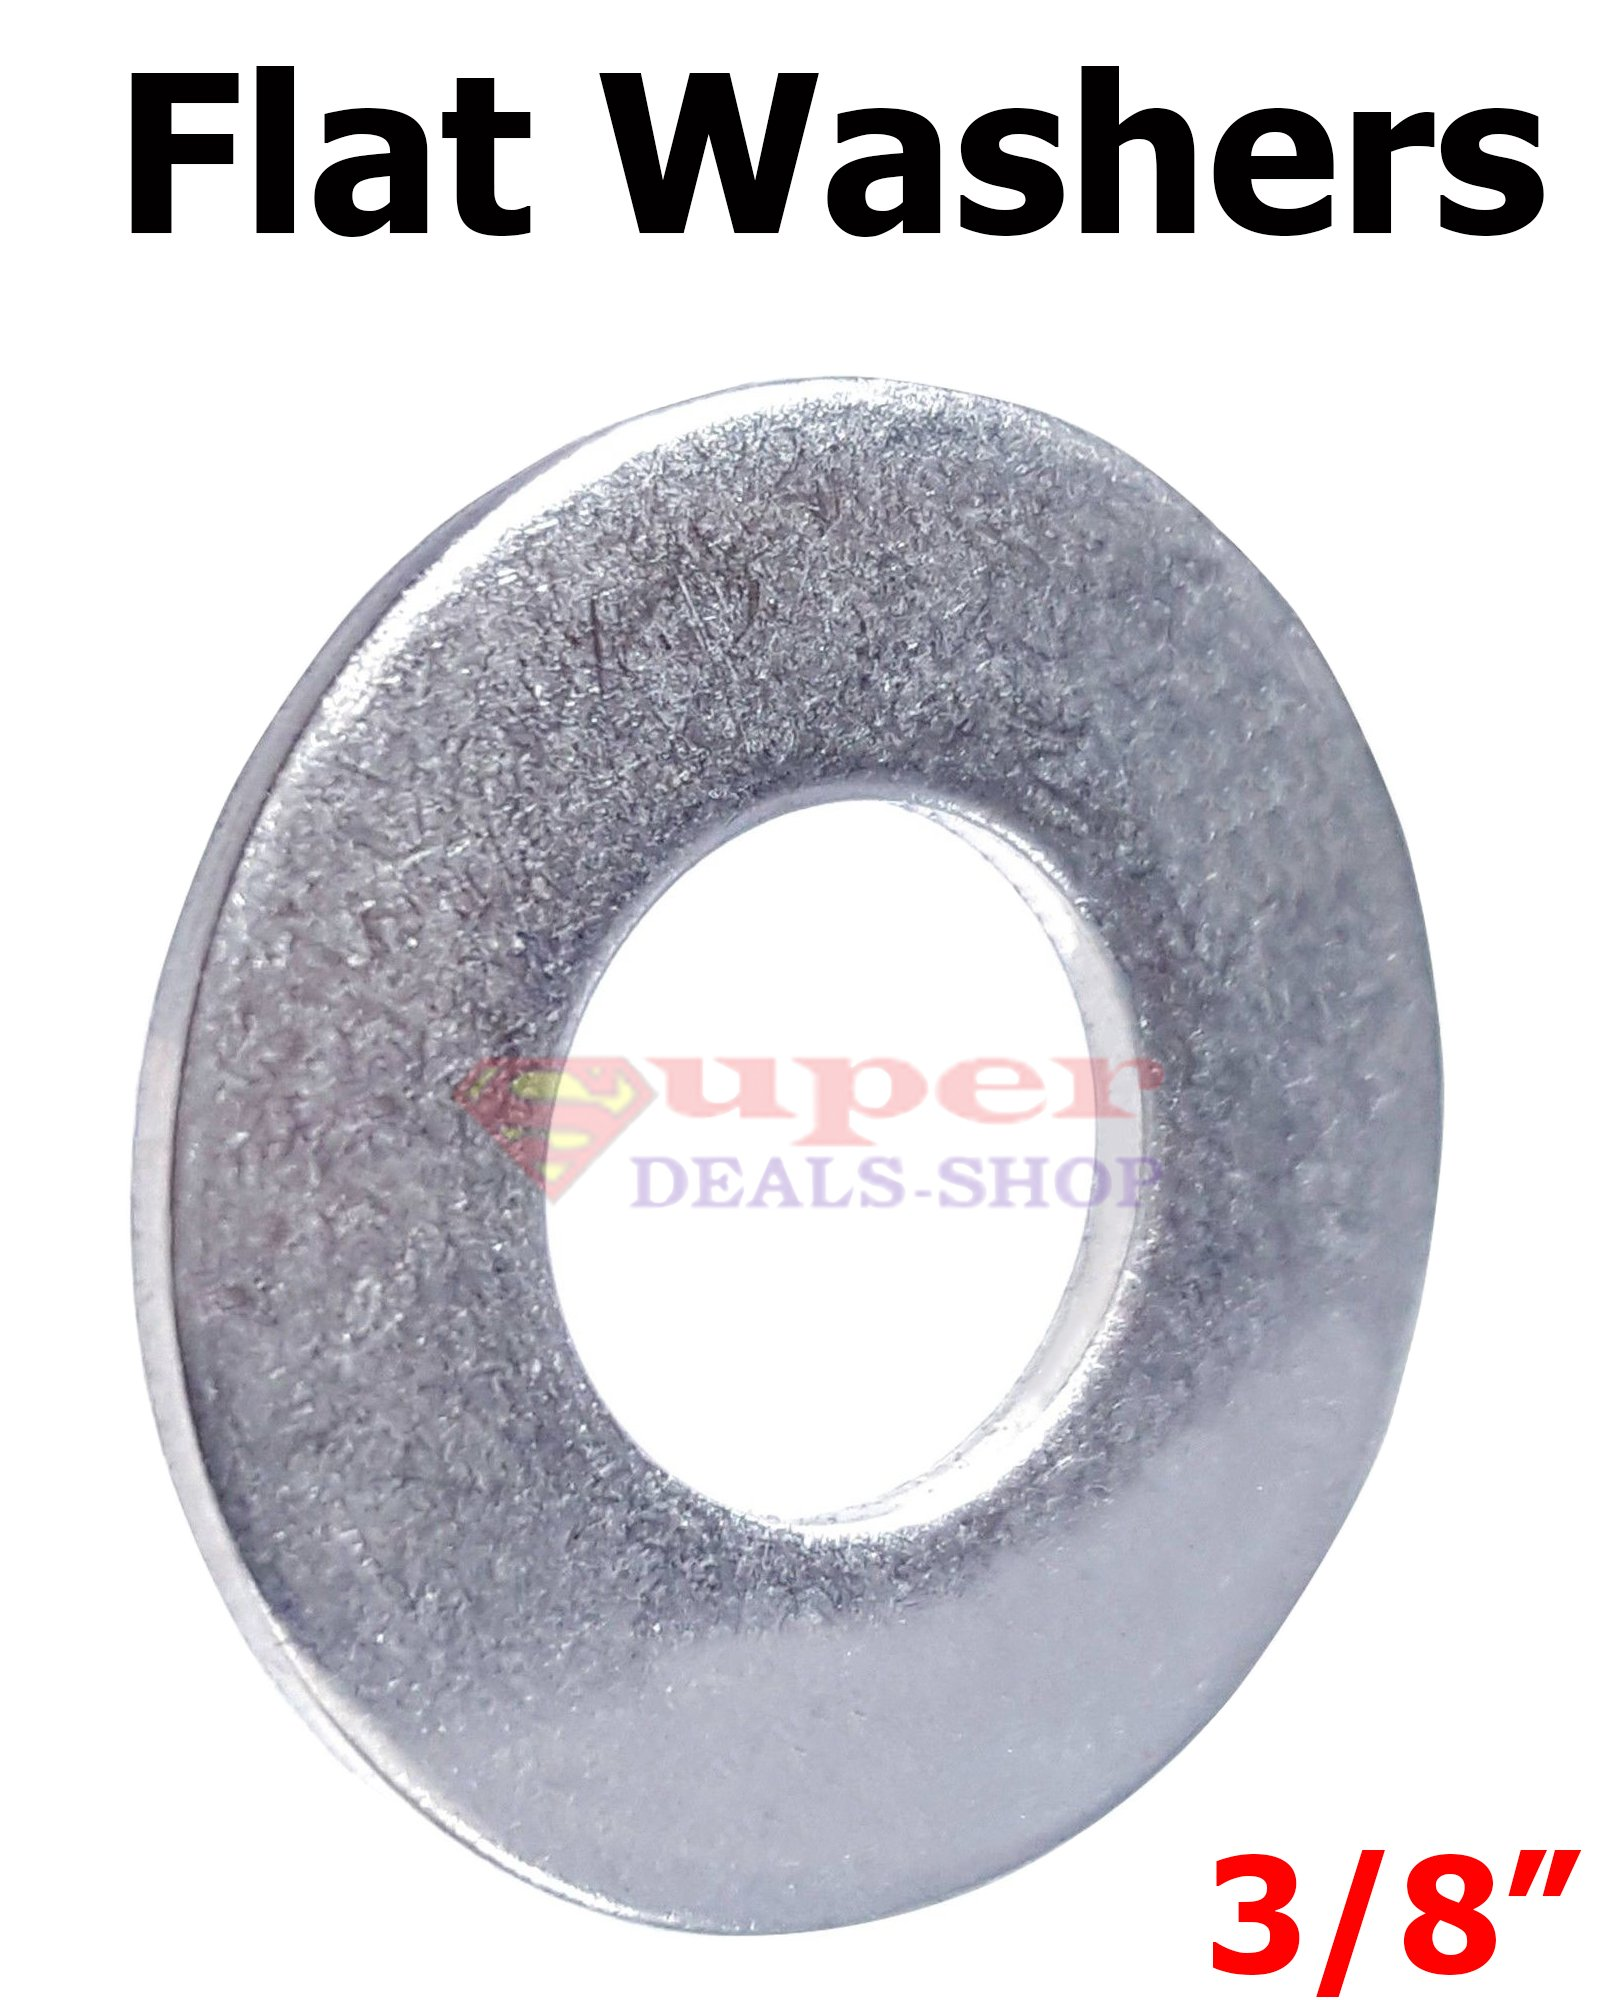 250 Pcs 3/8'' Stainless Steel Flat Washers SS Flat Washer Flats Super-Deals-Shop